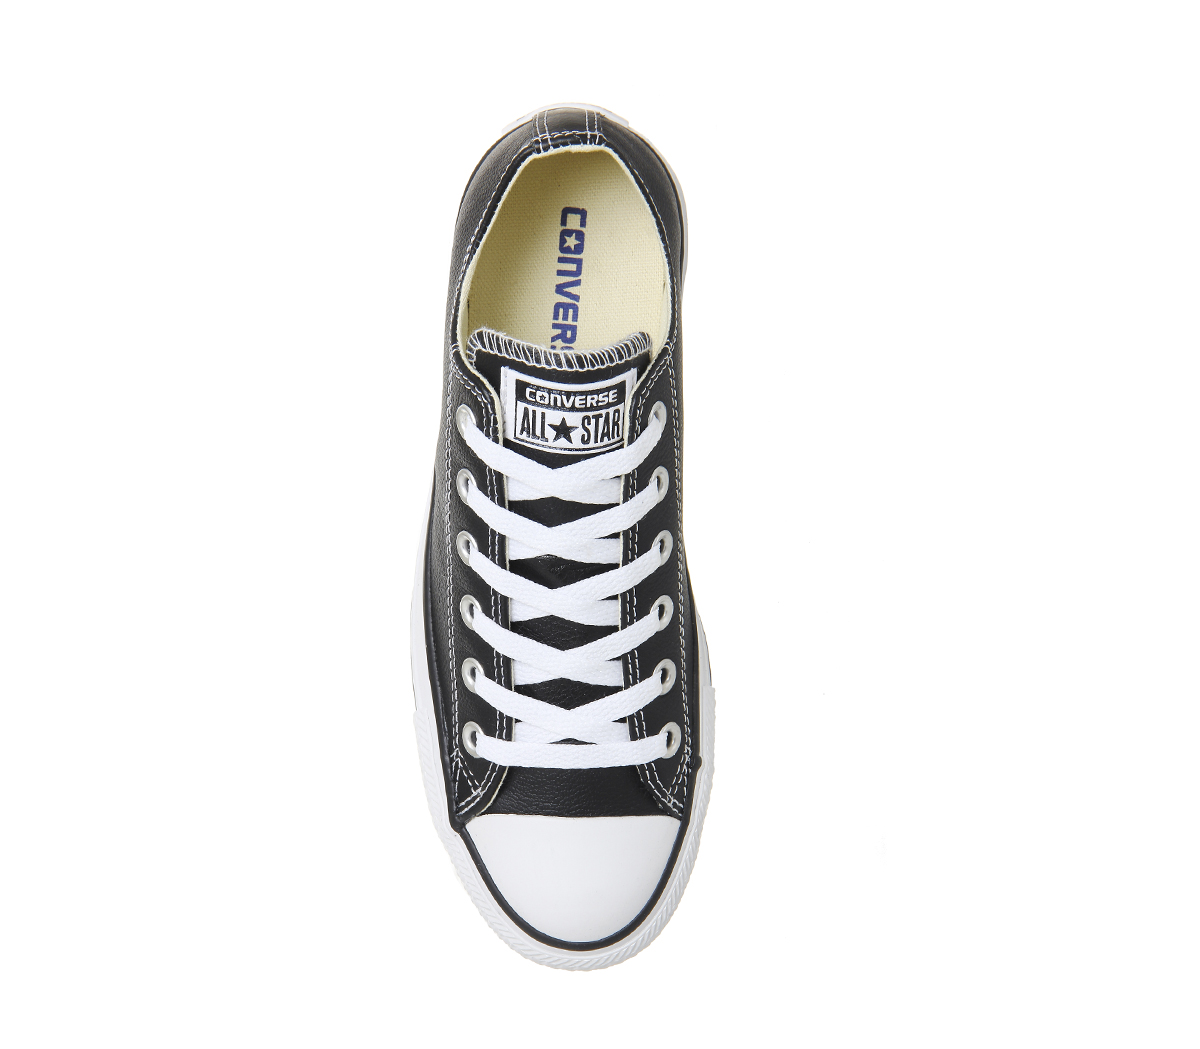 7626683d042 Womens Converse All Star Low Leather Black White Leather Trainers ...